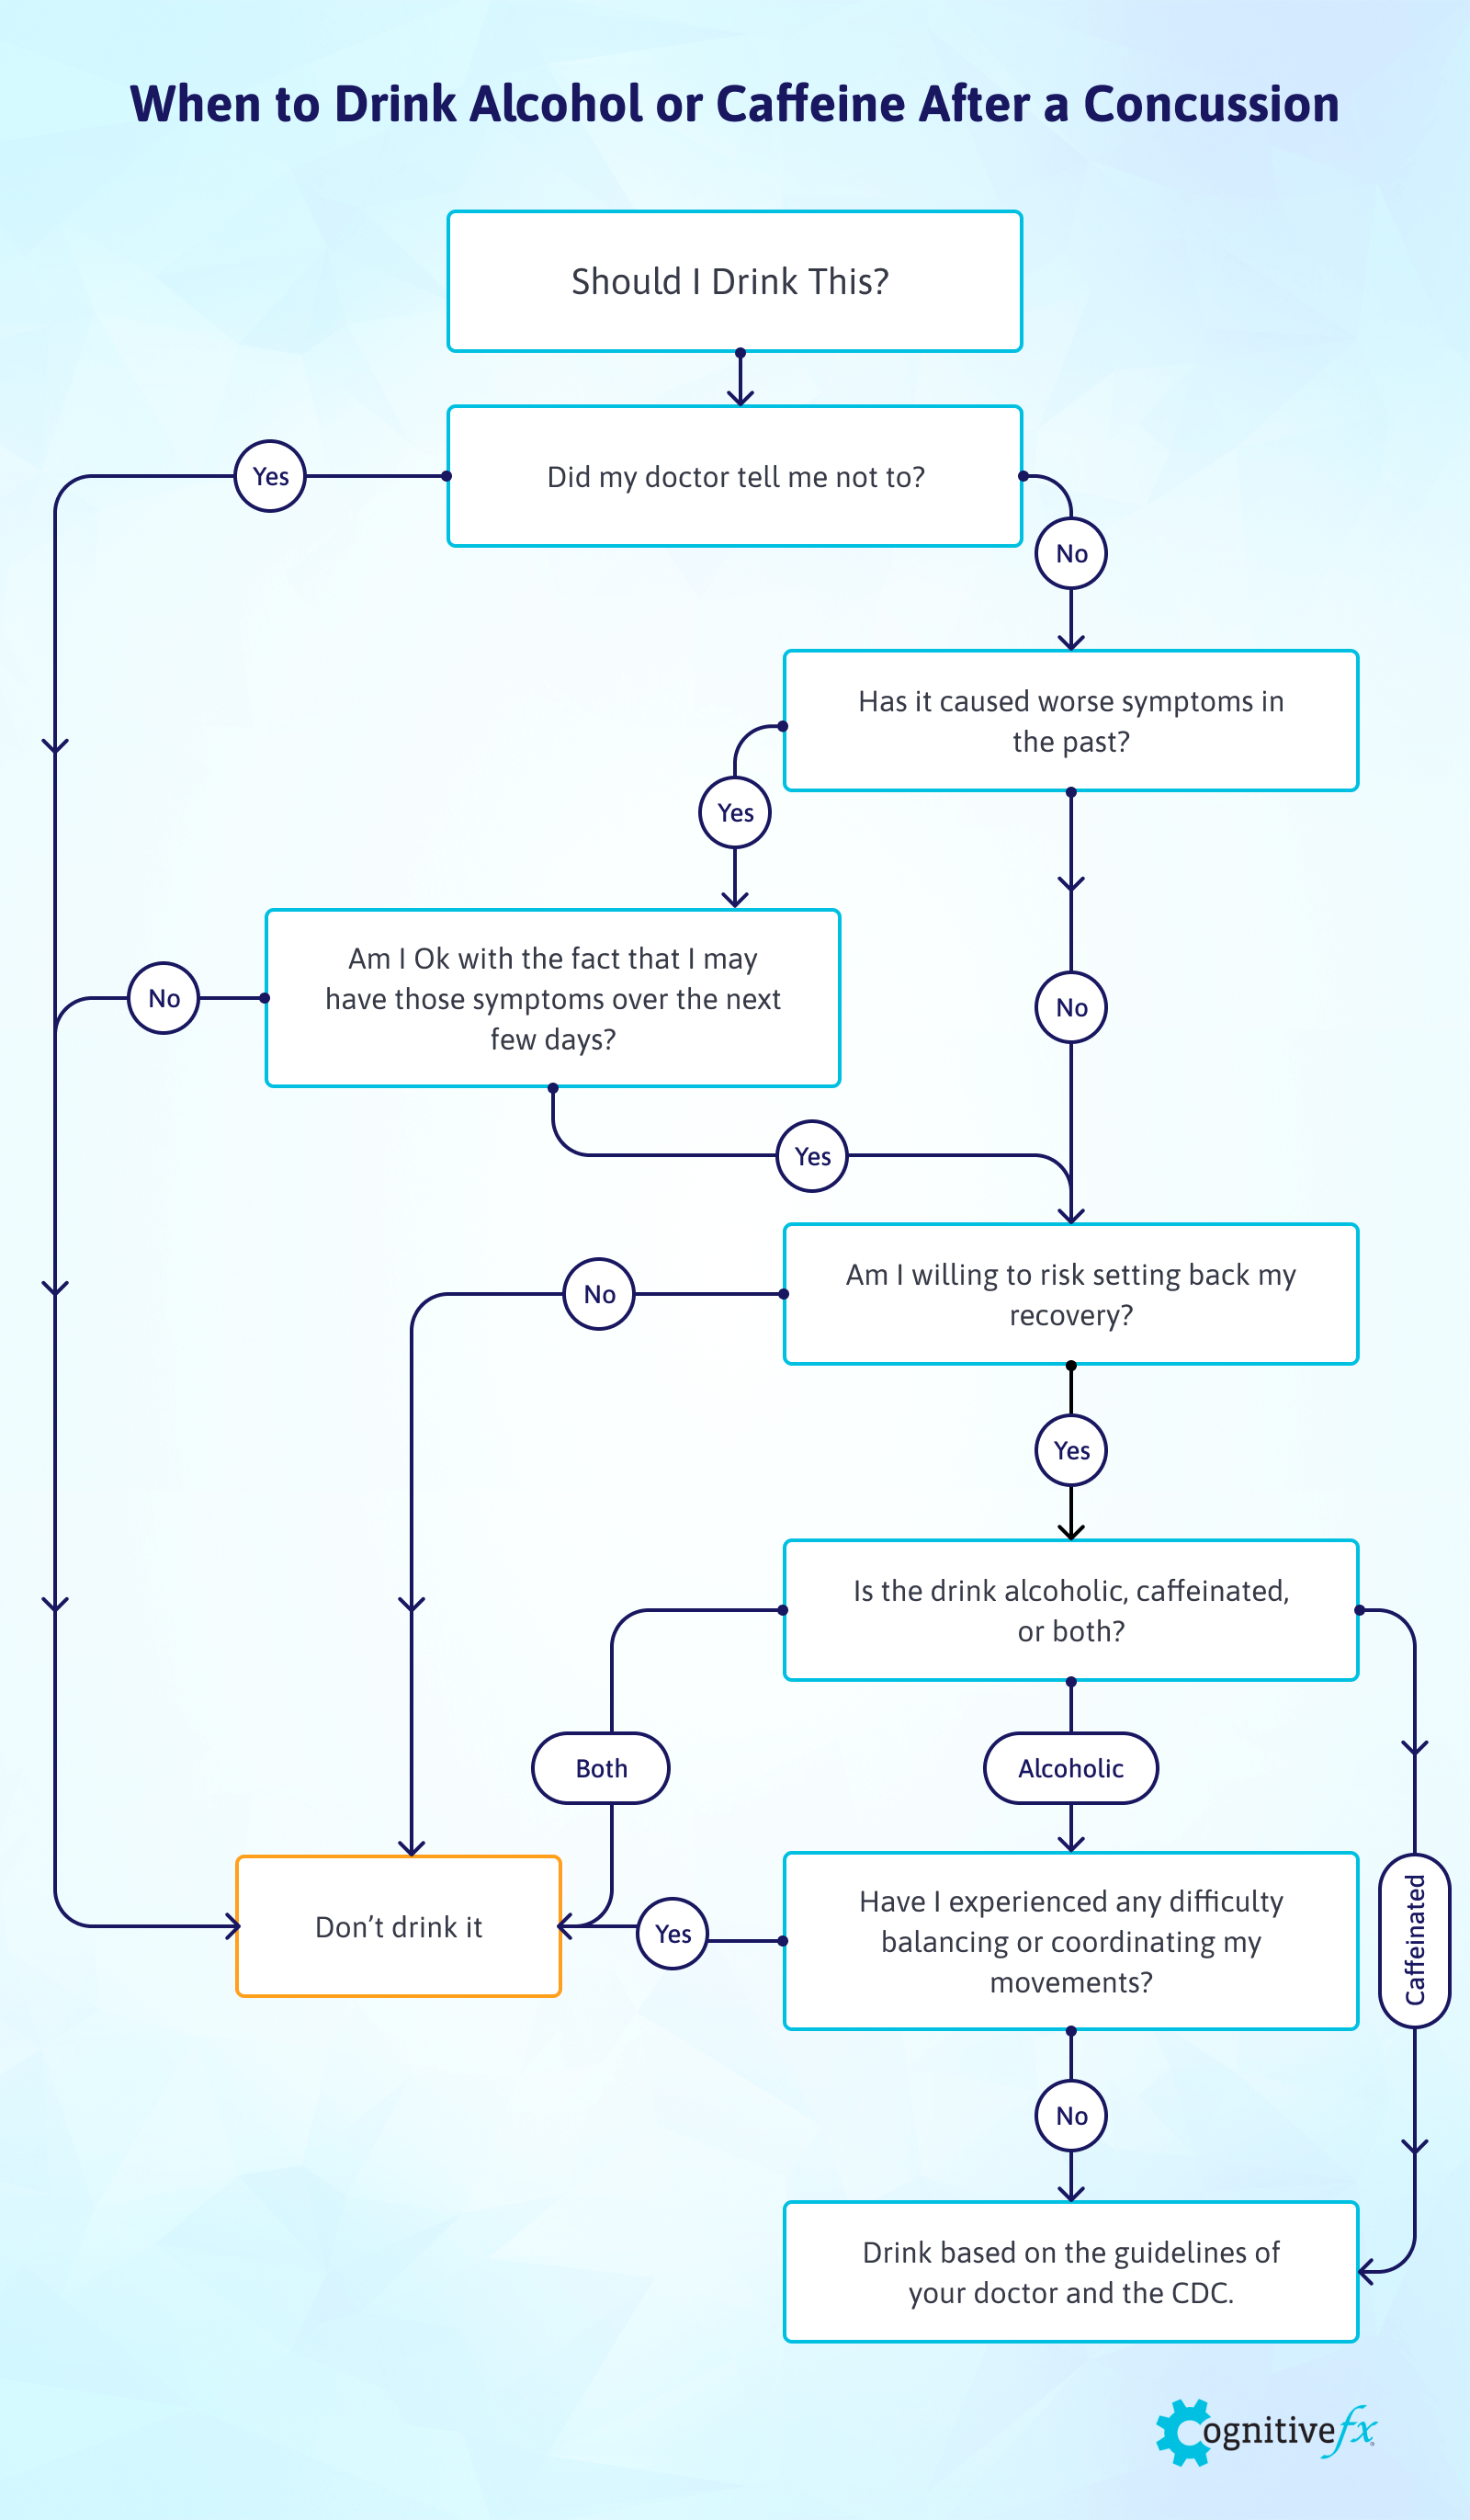 alcohol-caffeine-concussion-recovery-flowchart